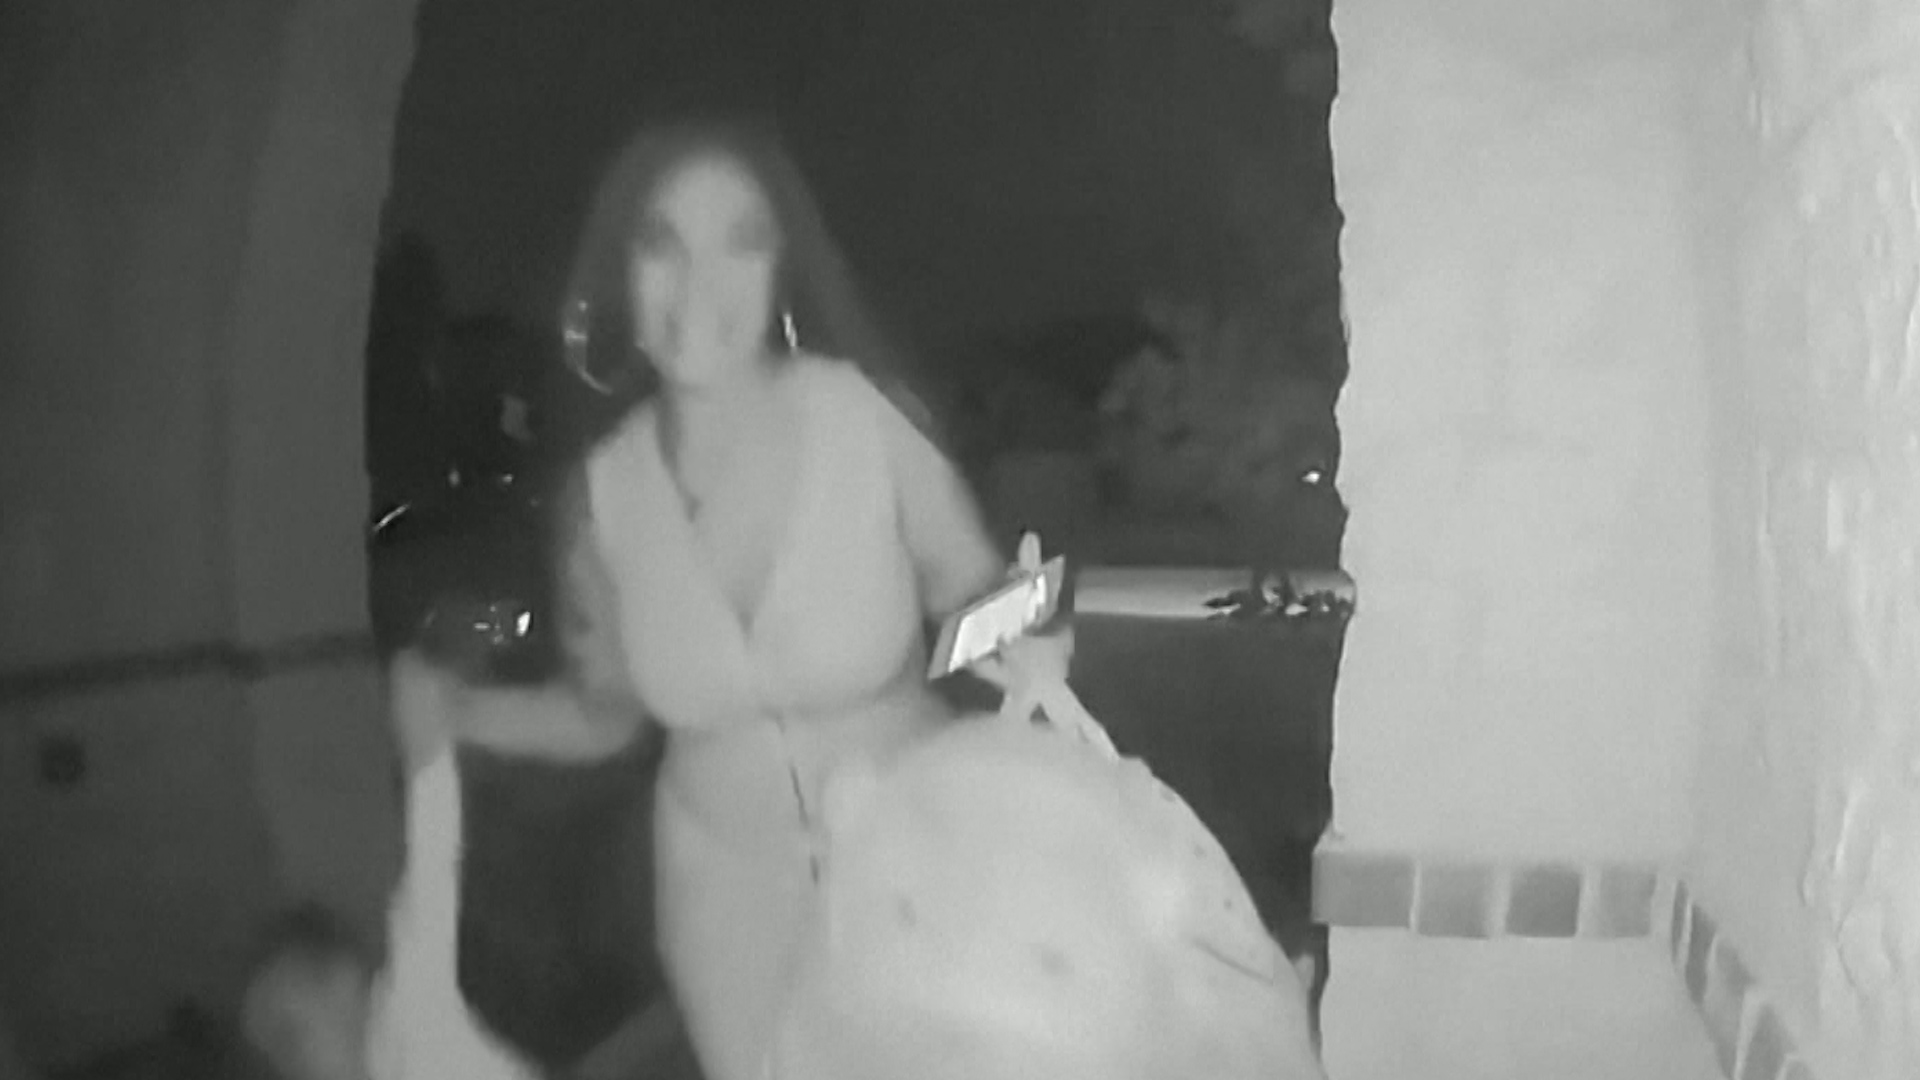 Woman seen in video abandoning toddler on doorstep of Texas home